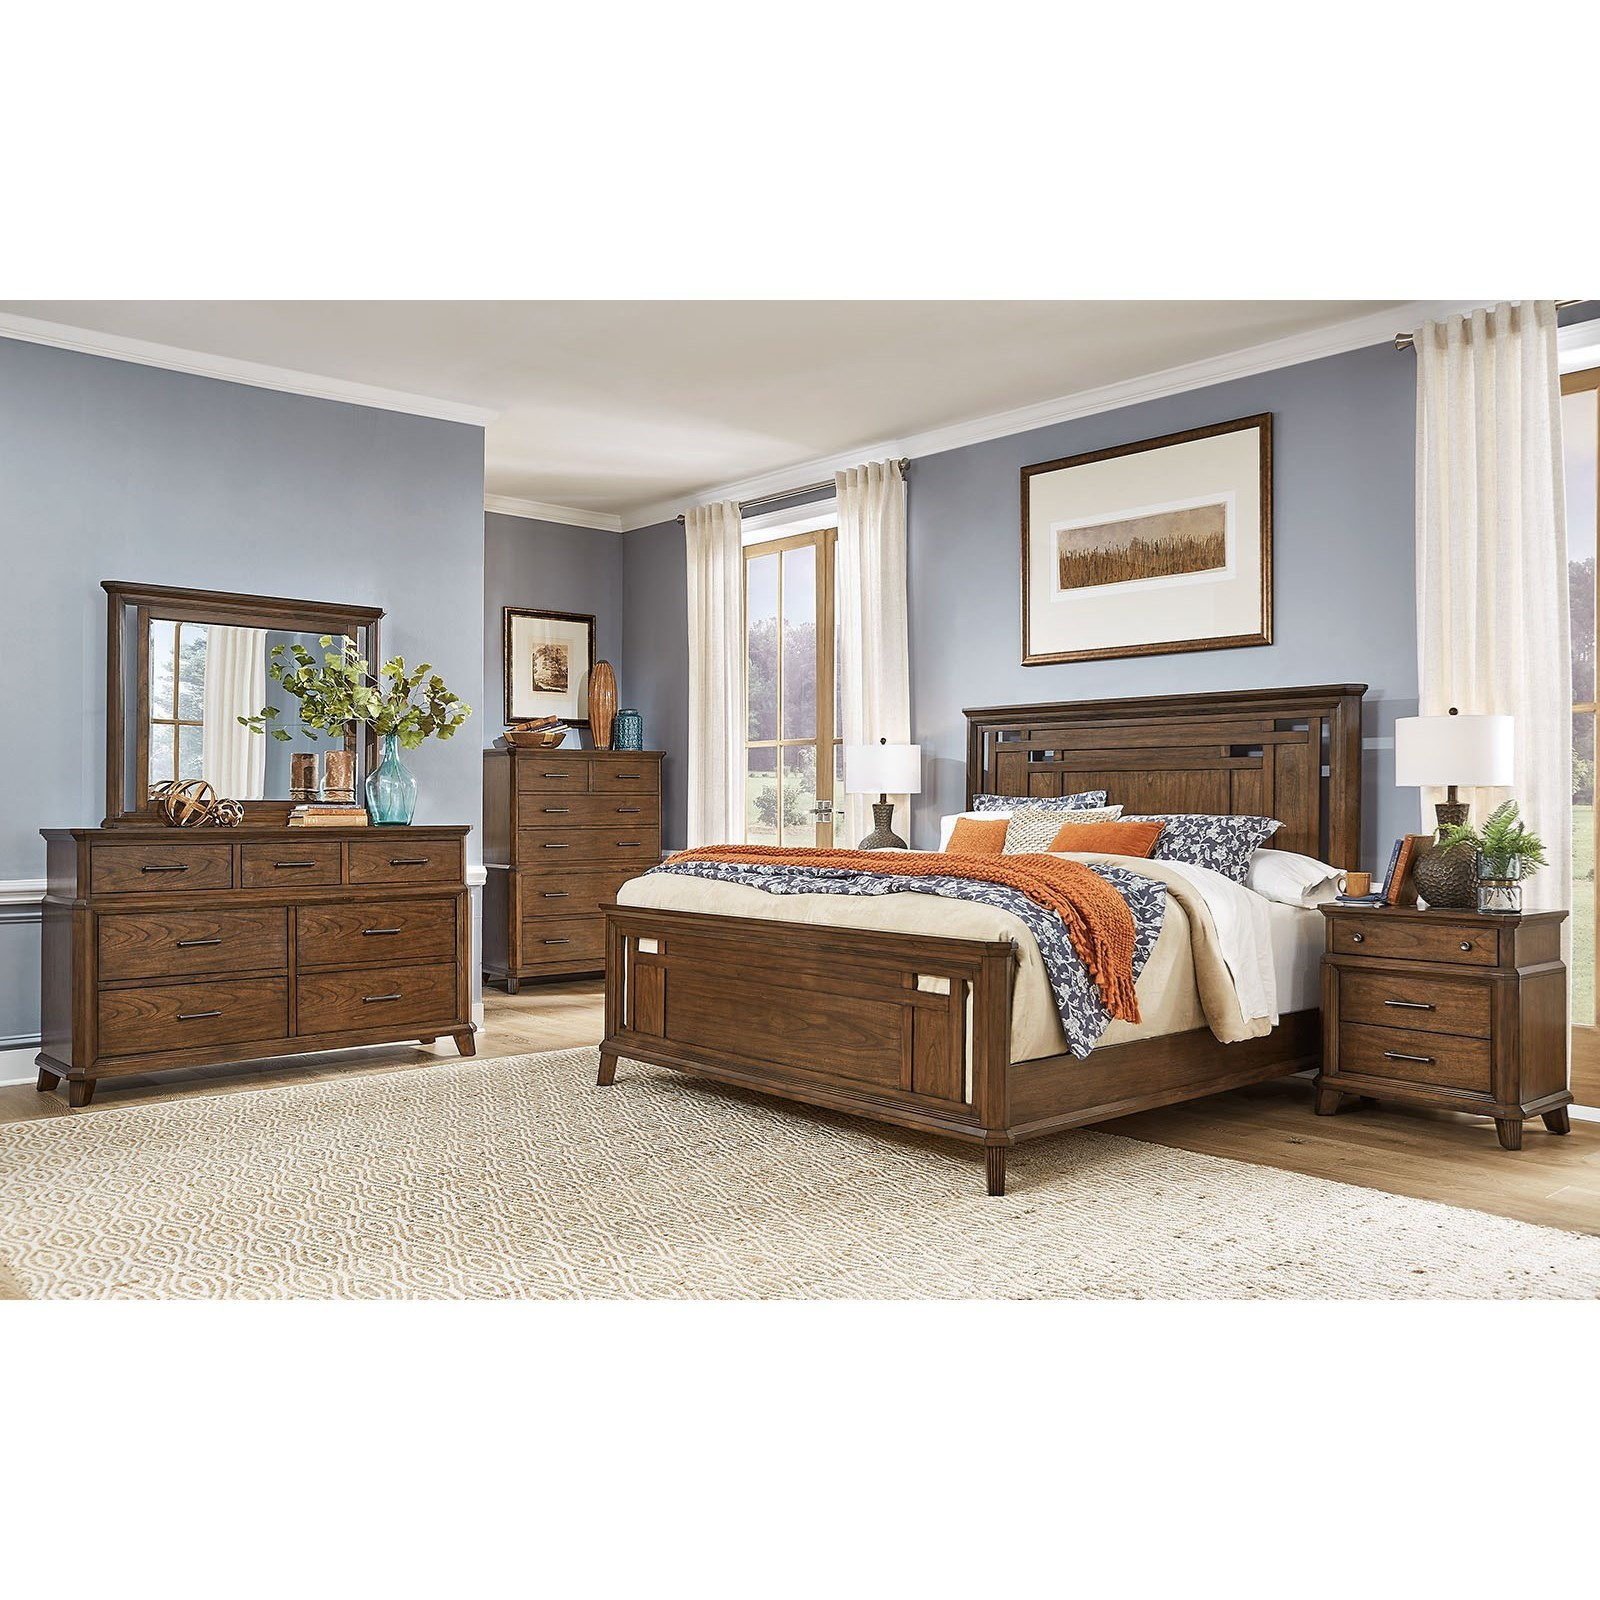 Filson Creek King Bedroom Group  by AAmerica at Furniture and ApplianceMart